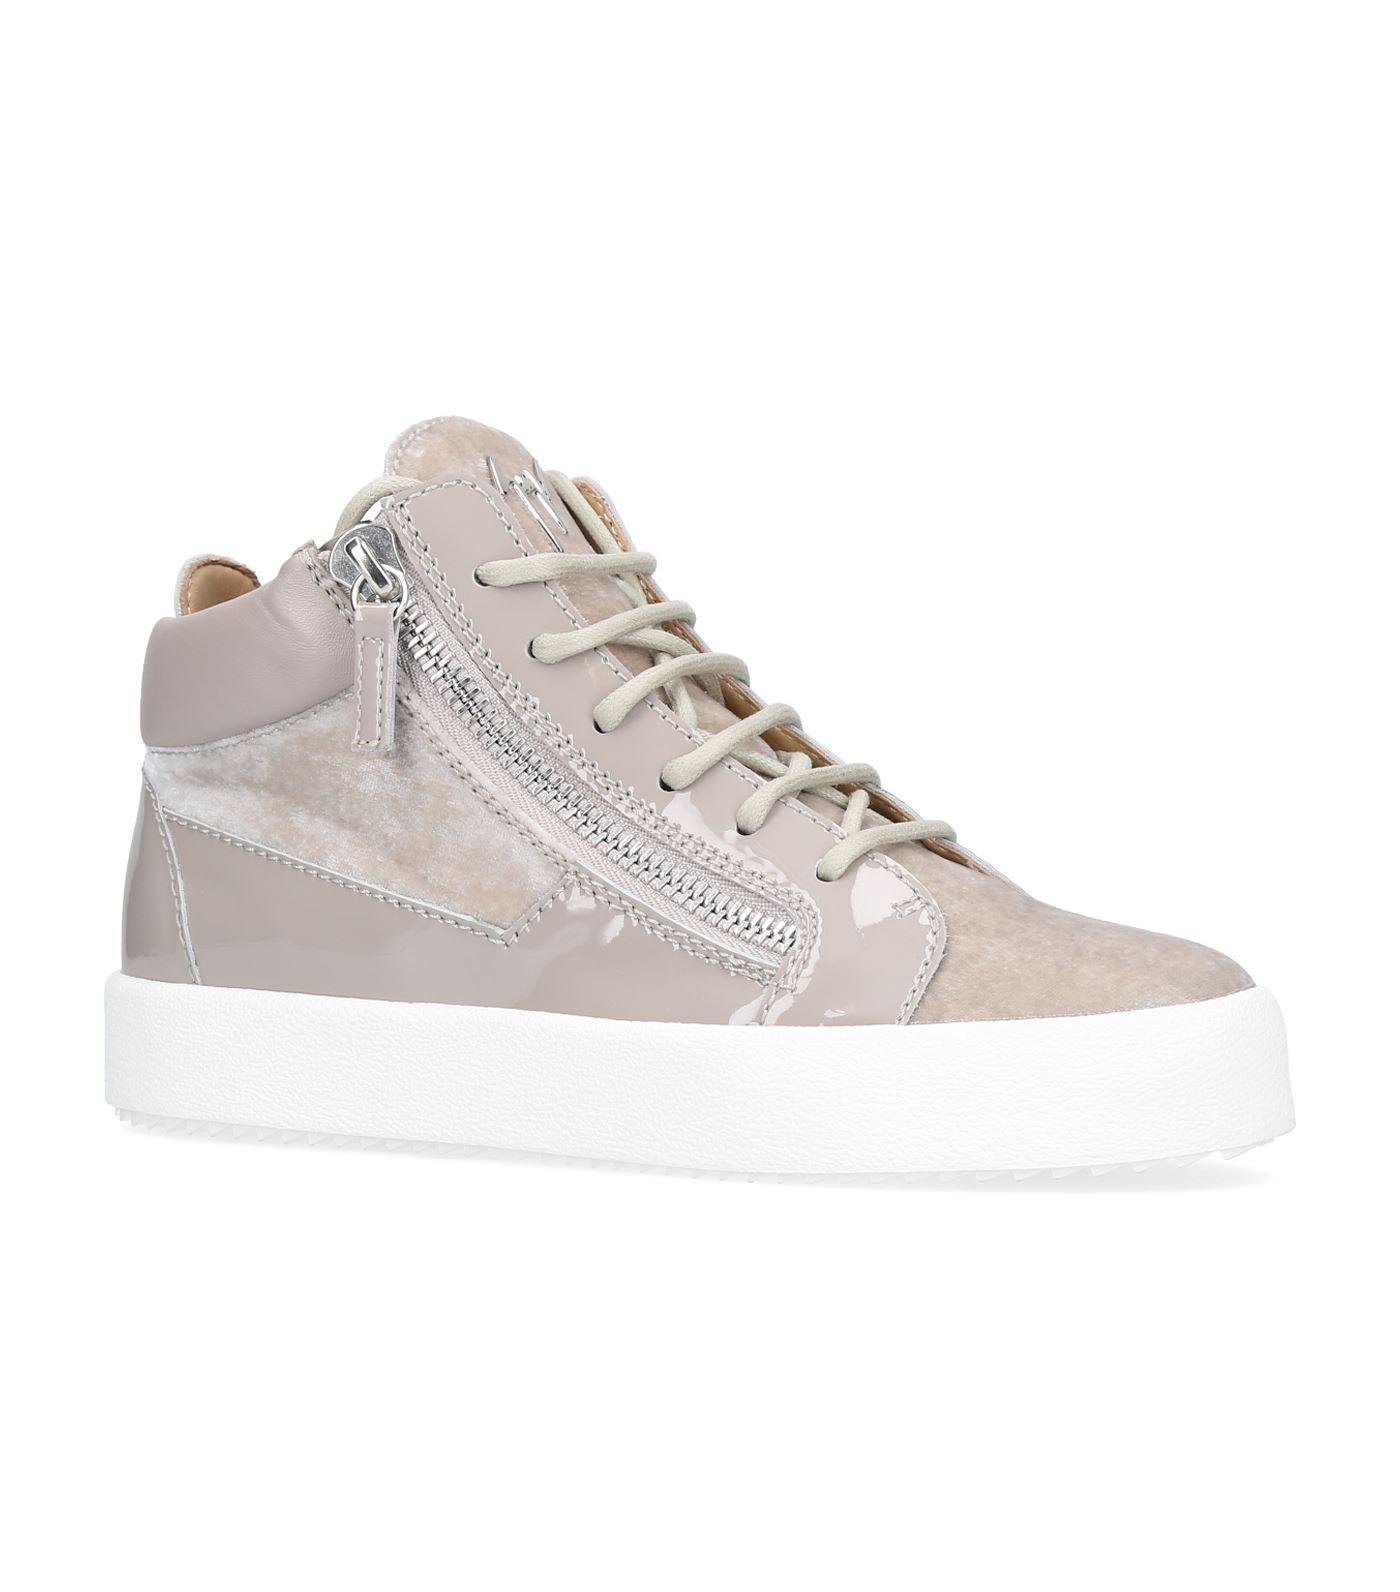 Grey Patent and Velvet Brek Mid-Top Sneakers Giuseppe Zanotti ysmFqQ